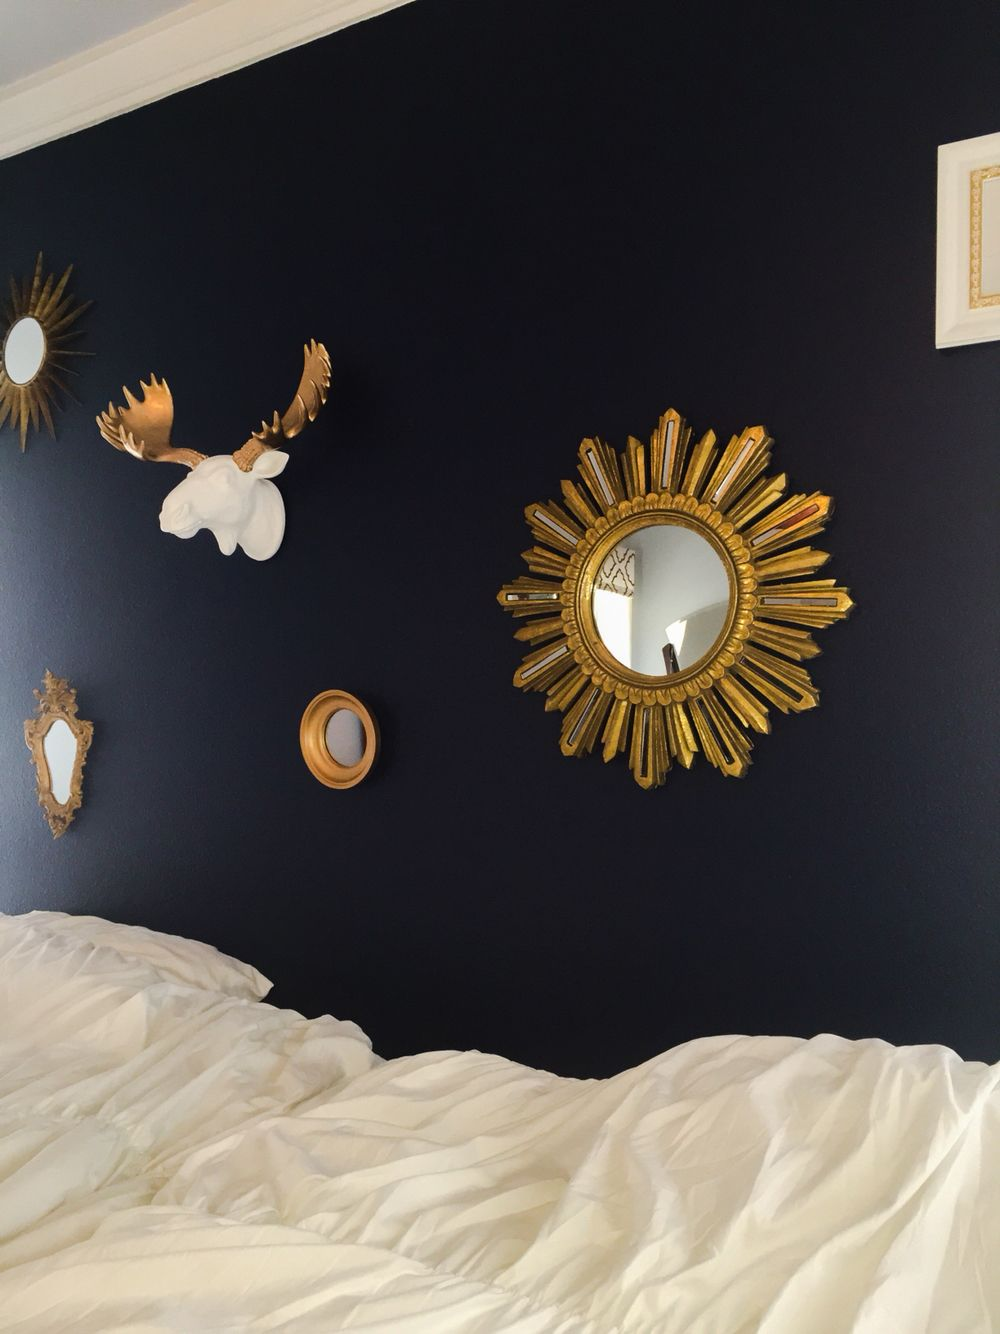 Valspar Indigo Streamer Paint With White And Gold Accents Moose Head Gold Mirrors Dark Blue Bedroom Dark Blue Paint Color Valspar Colors Dark Blue Bedrooms